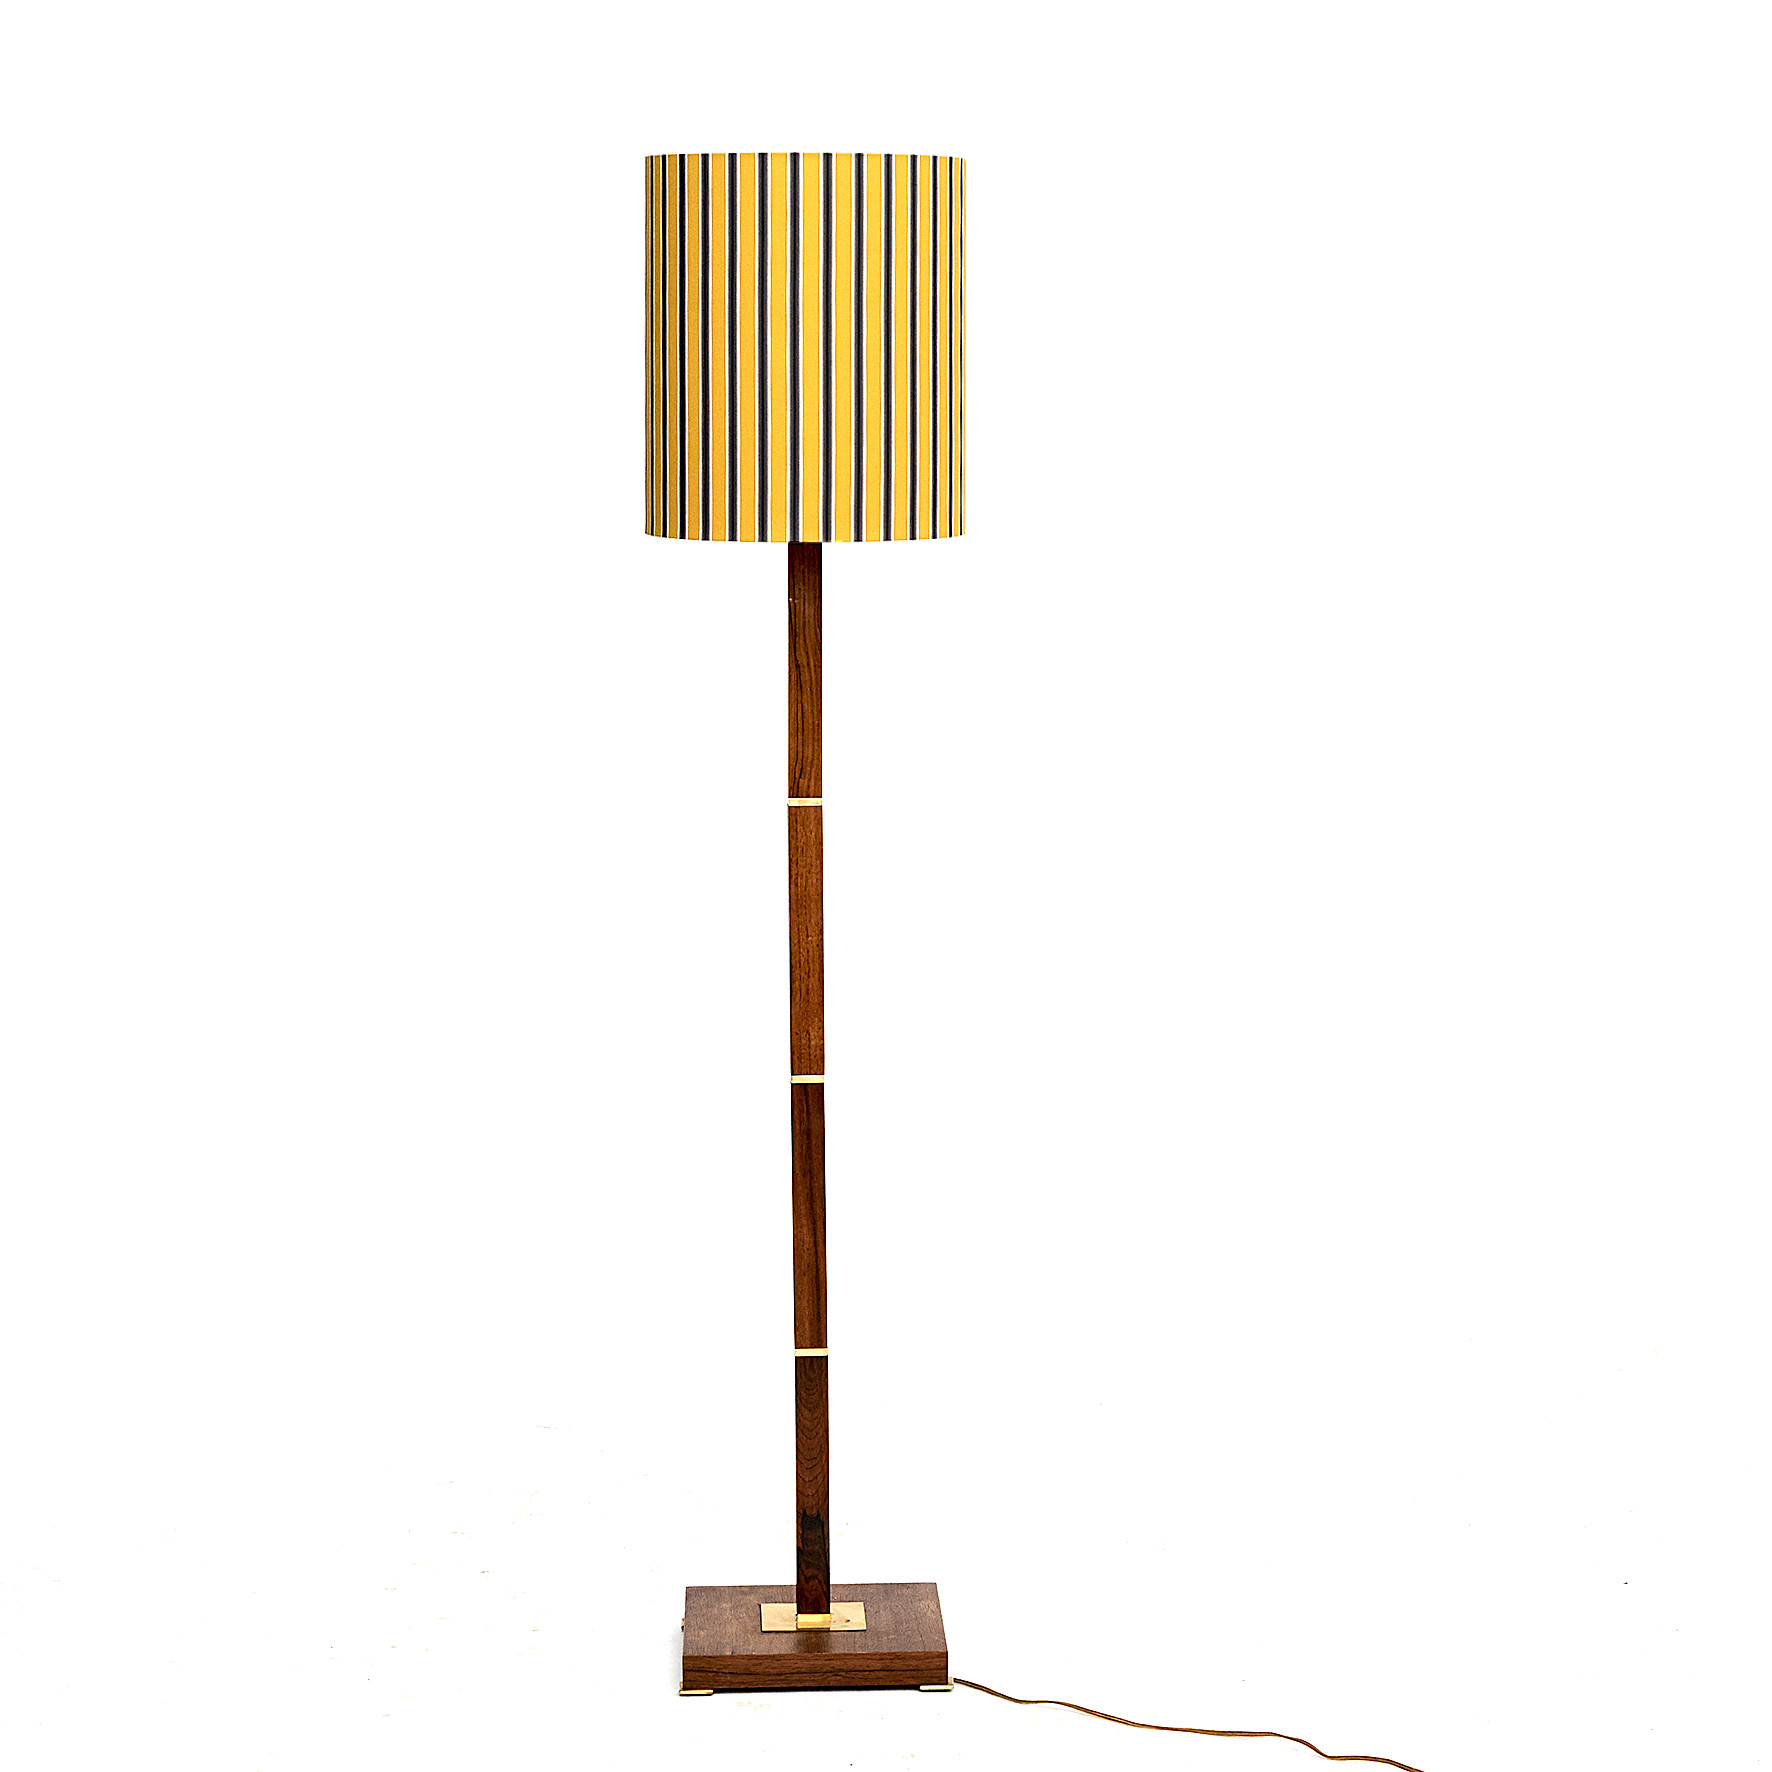 A Danish Mid-Century Fog & Mørup Rosewood and Brass Floor Lamp